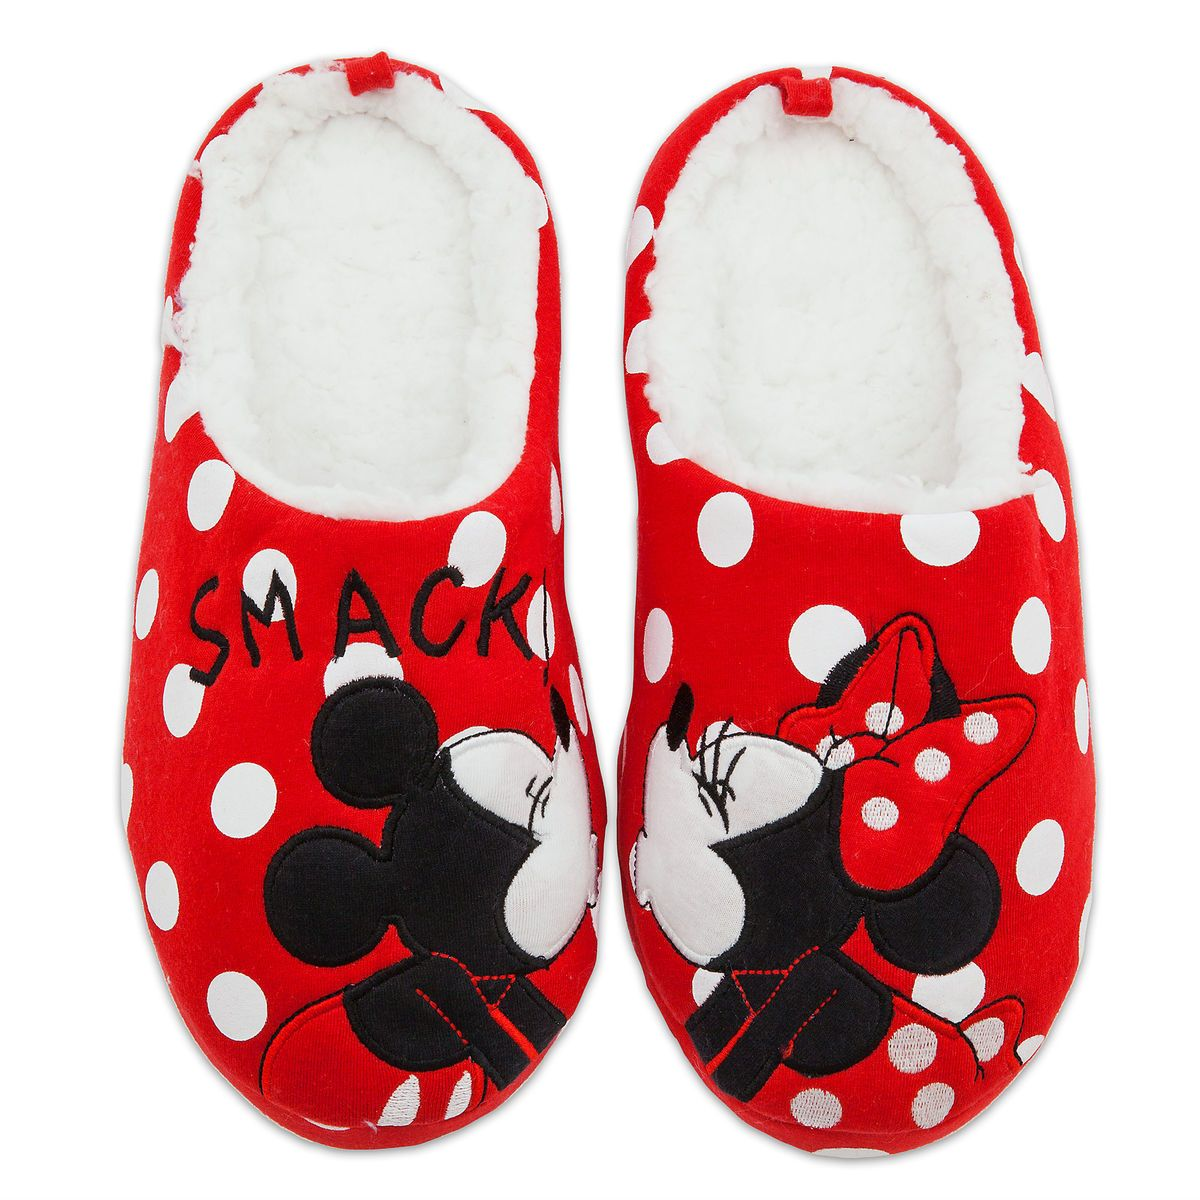 Mickey and Minnie Mouse Slippers for